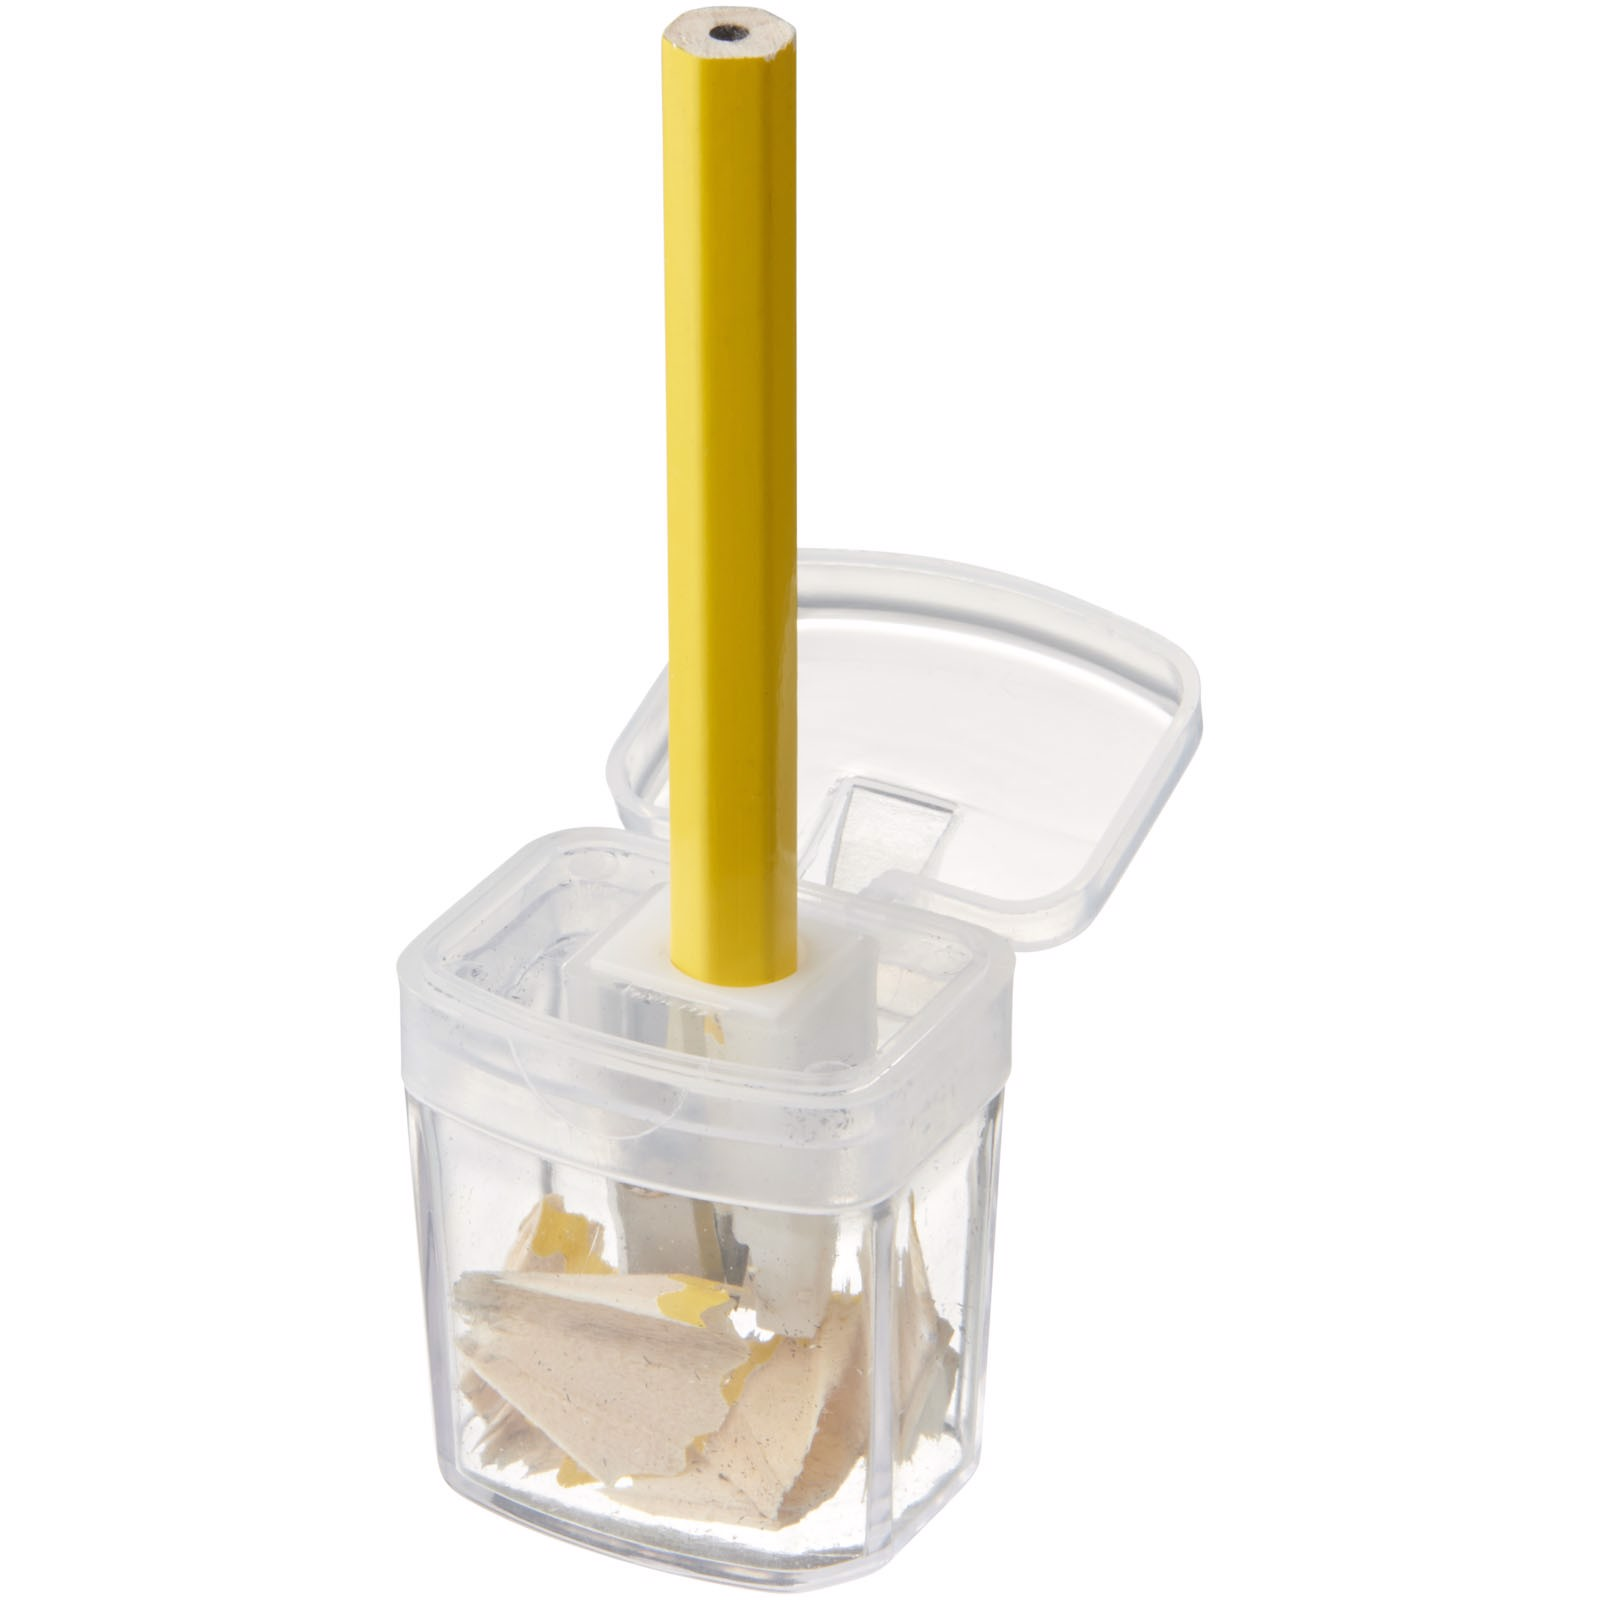 Sharpi sharpener with container - White